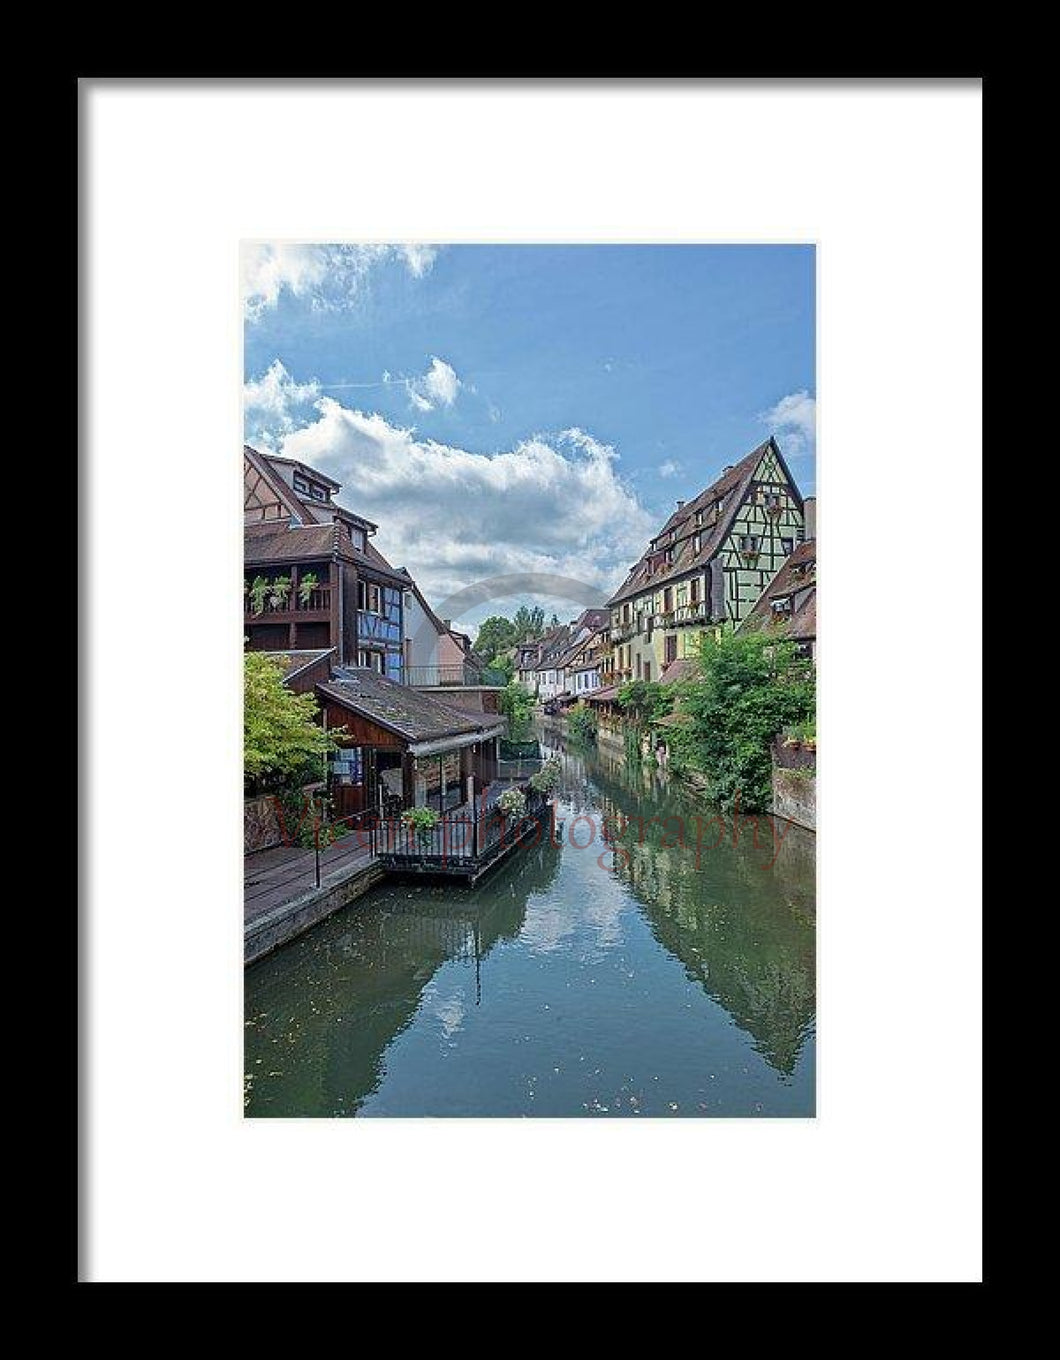 The Village Of Colmar In France - Framed Print 6.625 X 10.000 / Black White